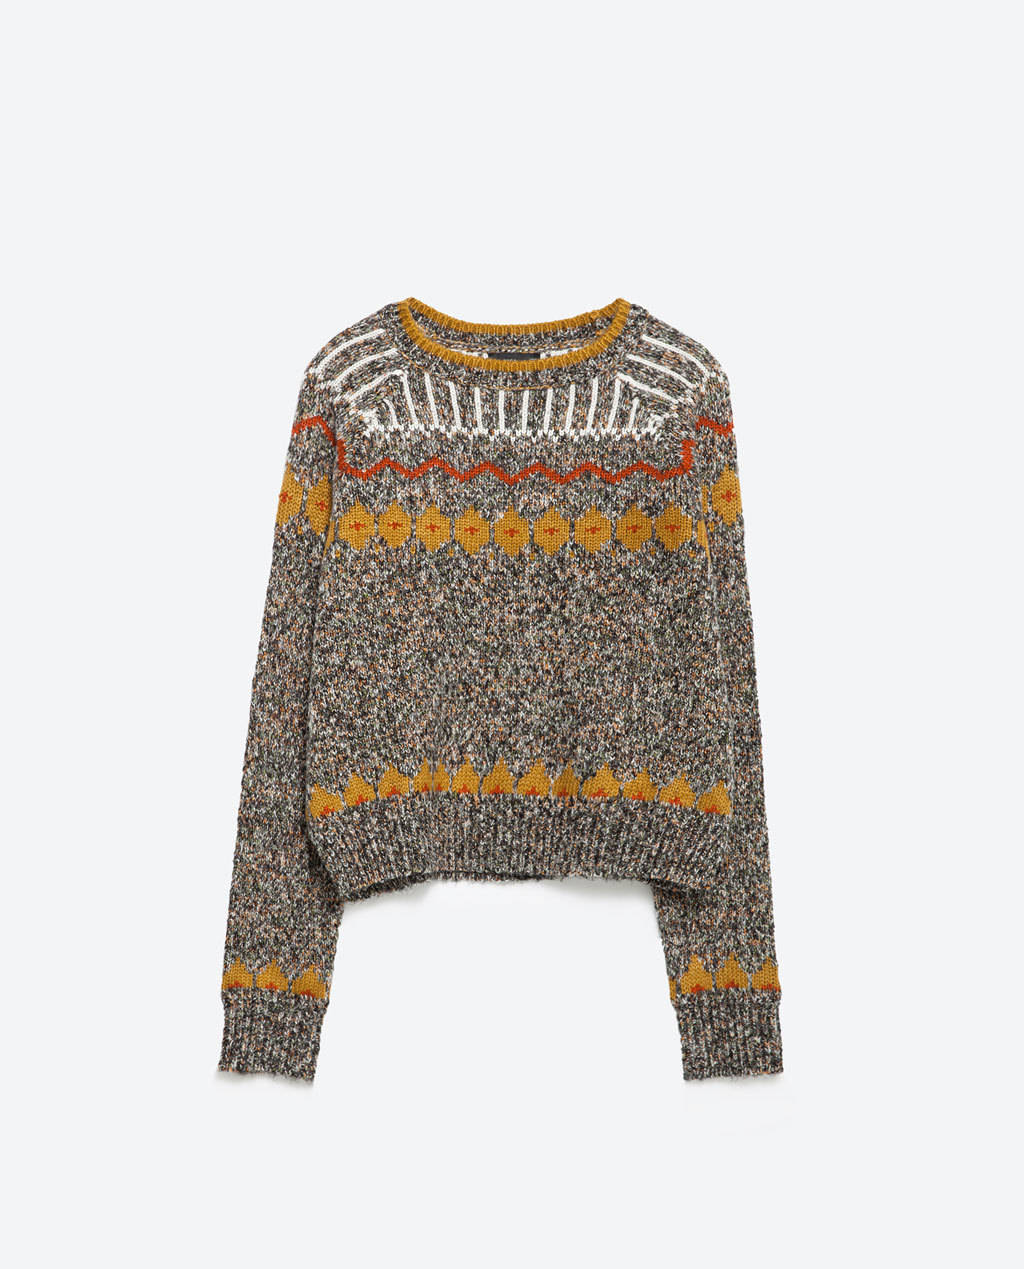 Jacquard Sweater - style: standard; secondary colour: mustard; predominant colour: taupe; occasions: casual; length: standard; fibres: acrylic - 100%; fit: loose; neckline: crew; pattern: fairisle; sleeve length: long sleeve; sleeve style: standard; texture group: knits/crochet; pattern type: knitted - other; pattern size: standard; multicoloured: multicoloured; season: a/w 2015; wardrobe: highlight